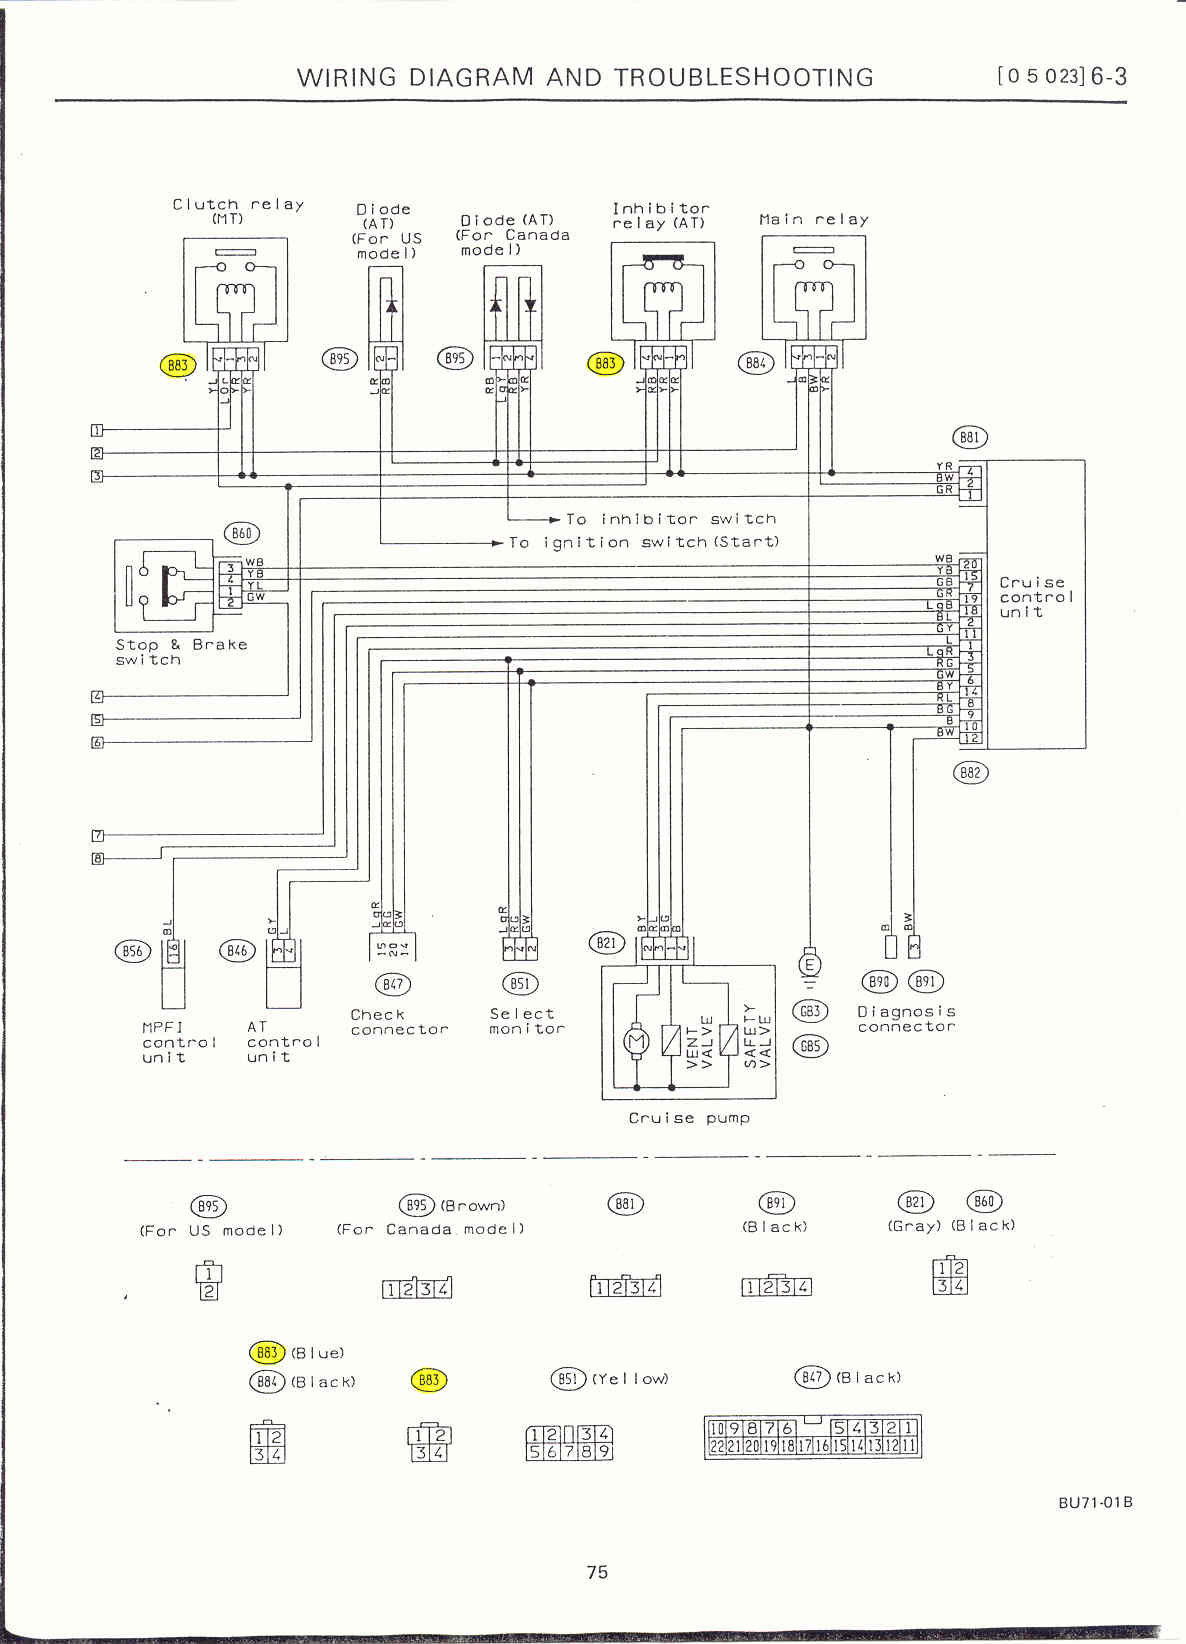 override switch wiring diagram of